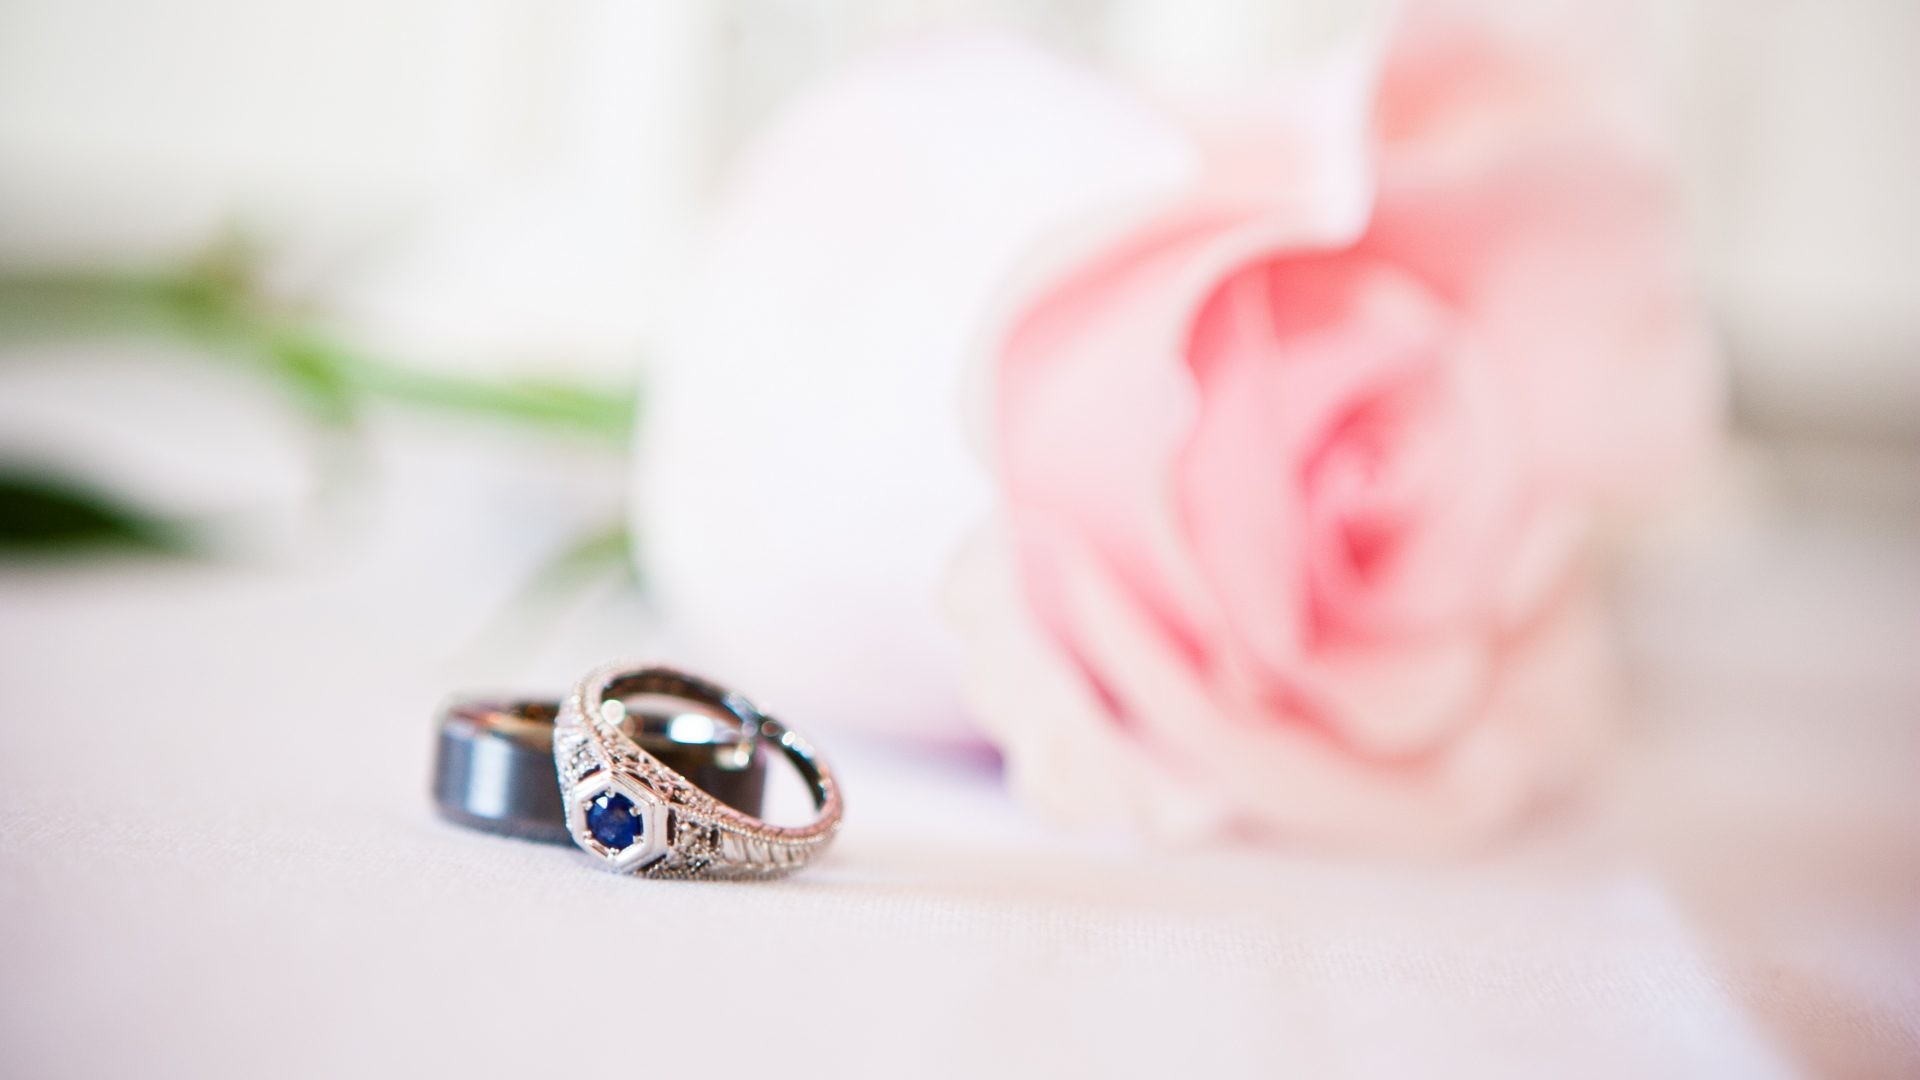 Pale Tag – Feelings Sublime Rose Proposal Pretty Pale Pink Nature Pastel  Sweet Love Rings Marriage